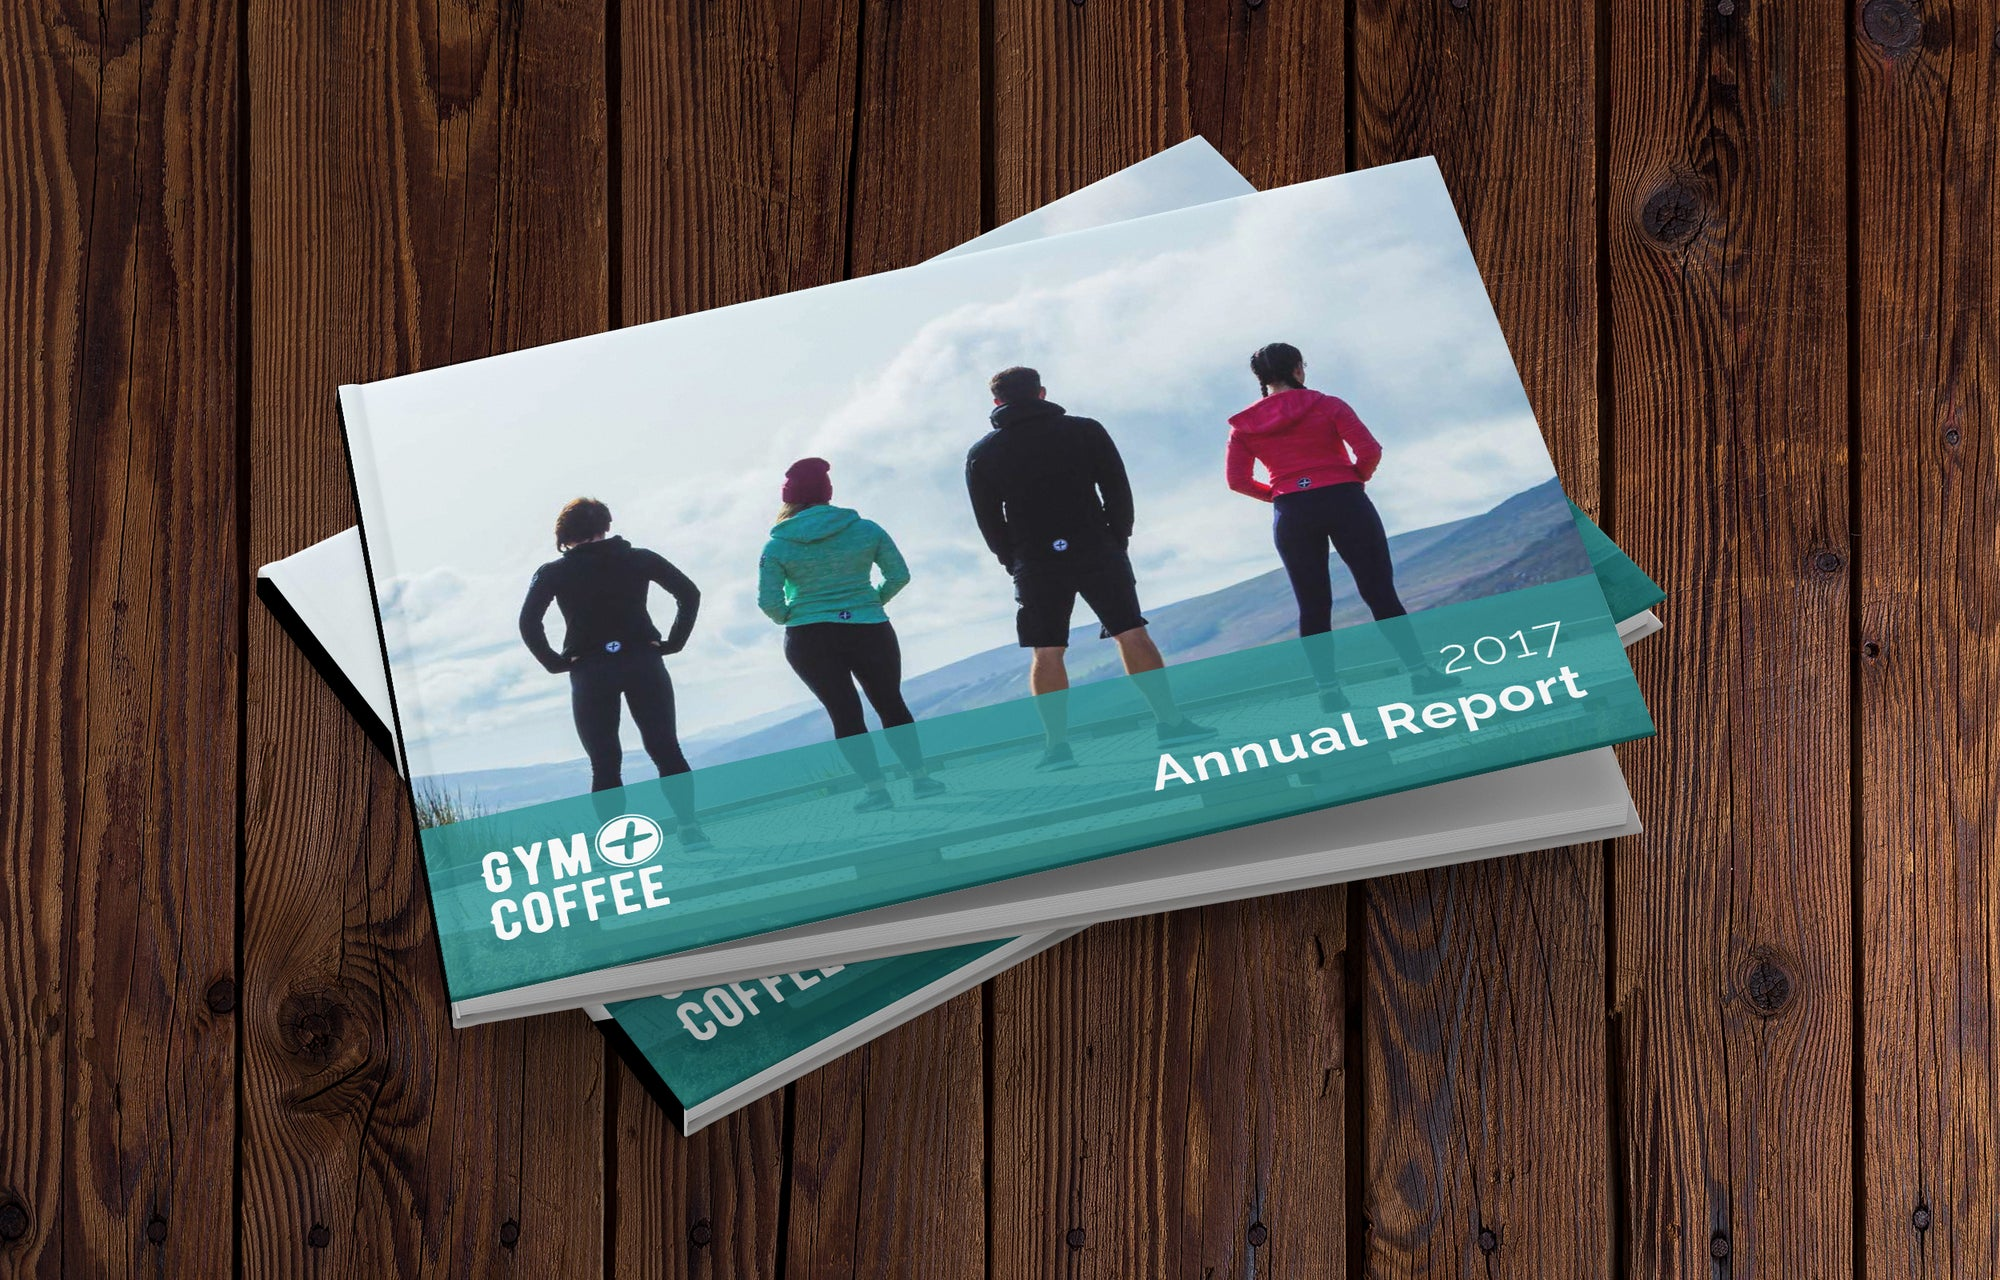 Chapter 18: First Annual Report